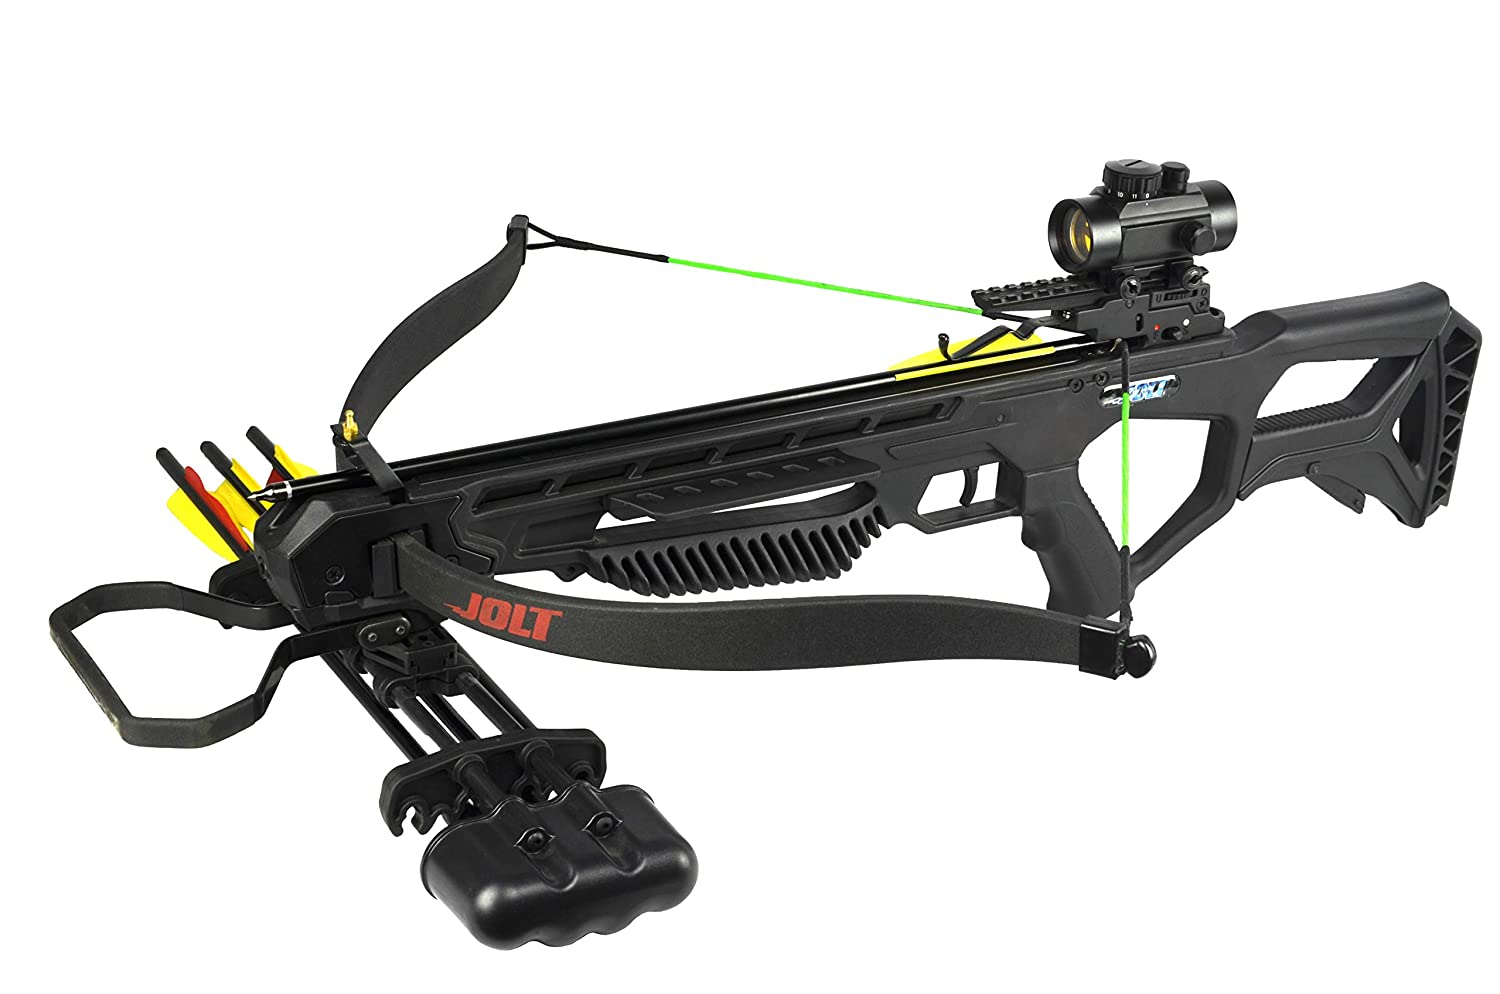 PSE Archery Jolt Hunting Crossbow Package – Recurve Limbs - 175 lb Draw  Weight – Red Dot Scope – Rubber Coated Foot Stirrup – 250 FPS – Zombie  Green